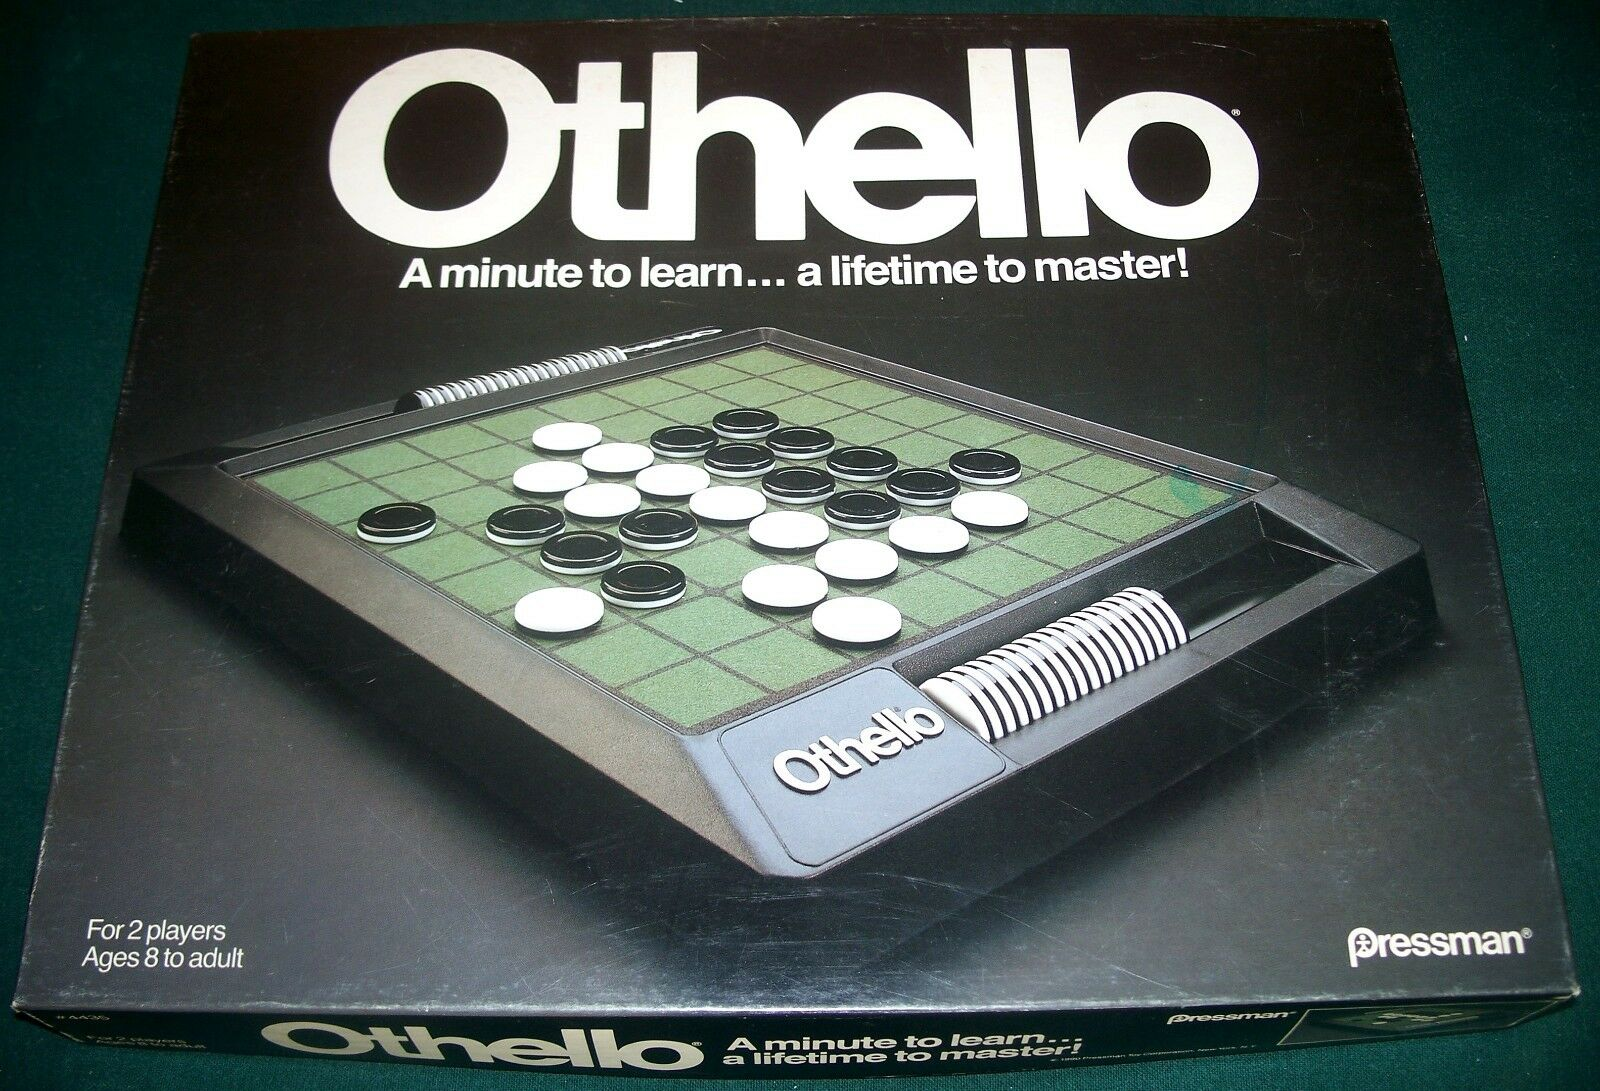 1990 Pressman OTHELLO Game - Never Used Used Used - Sealed Parts c376df